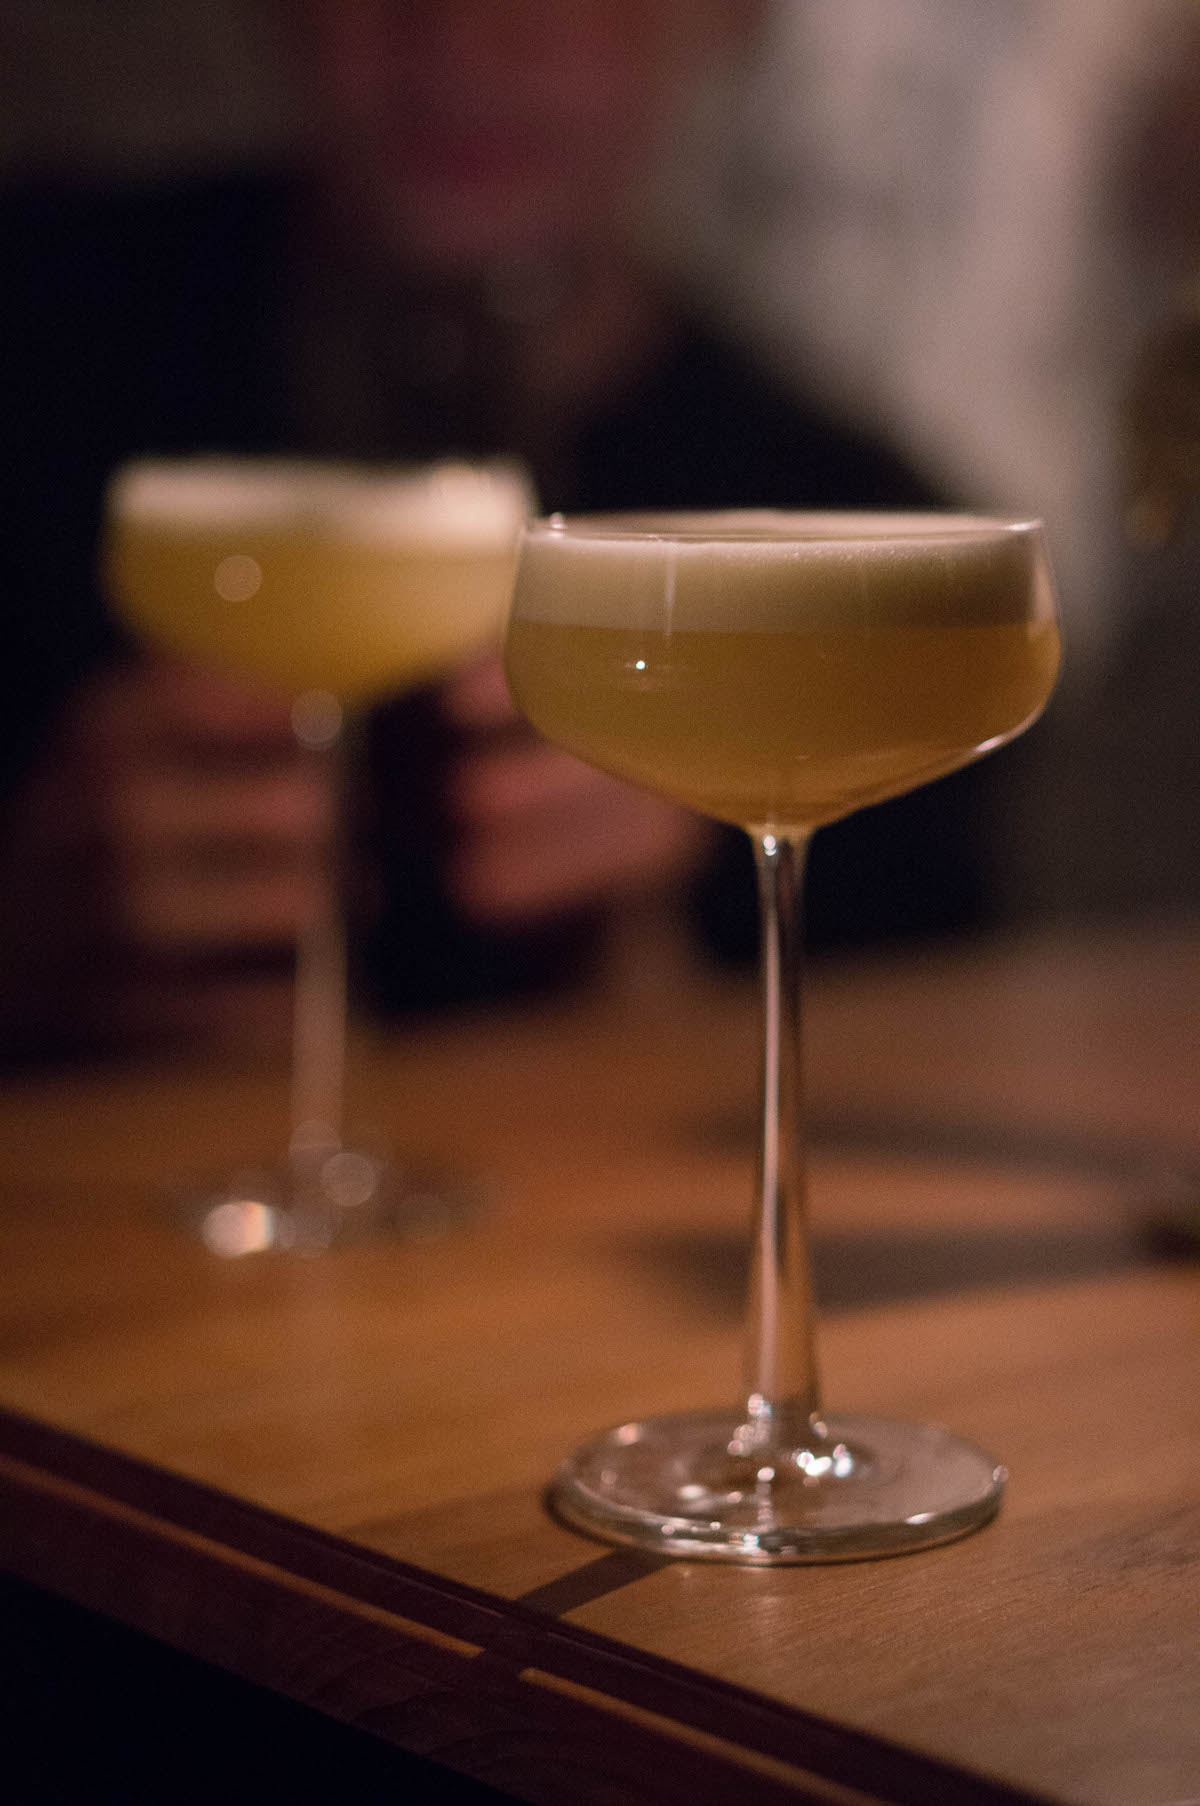 De Pisco Sour van Rosa's Menagerie in Amsterdam